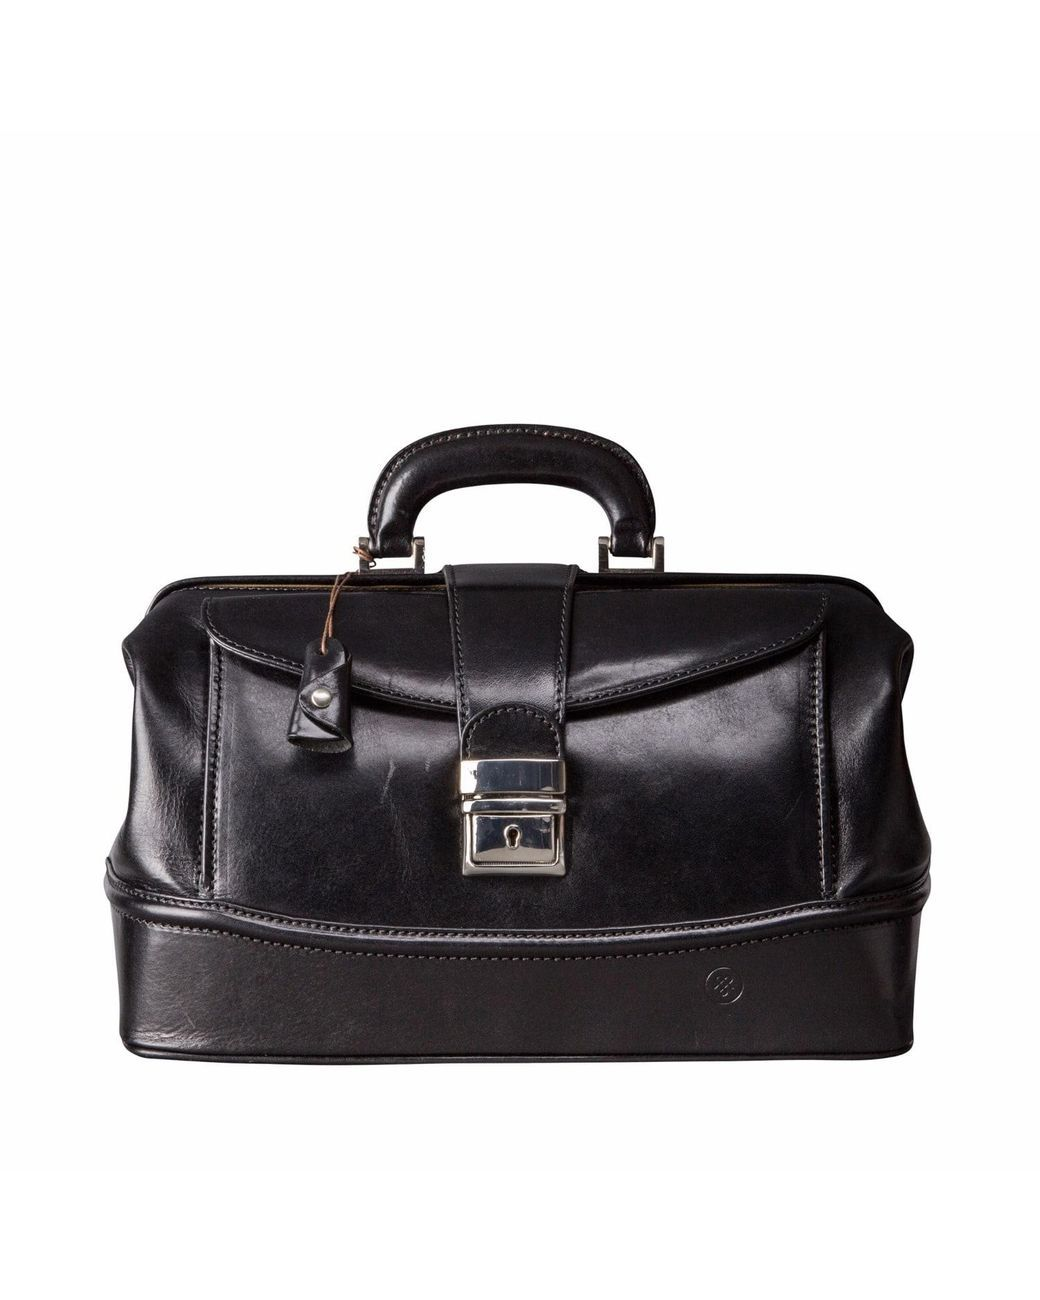 b35da04b6285 Men s The Donnini S Small Luxury Leather Doctors Bag Black ...